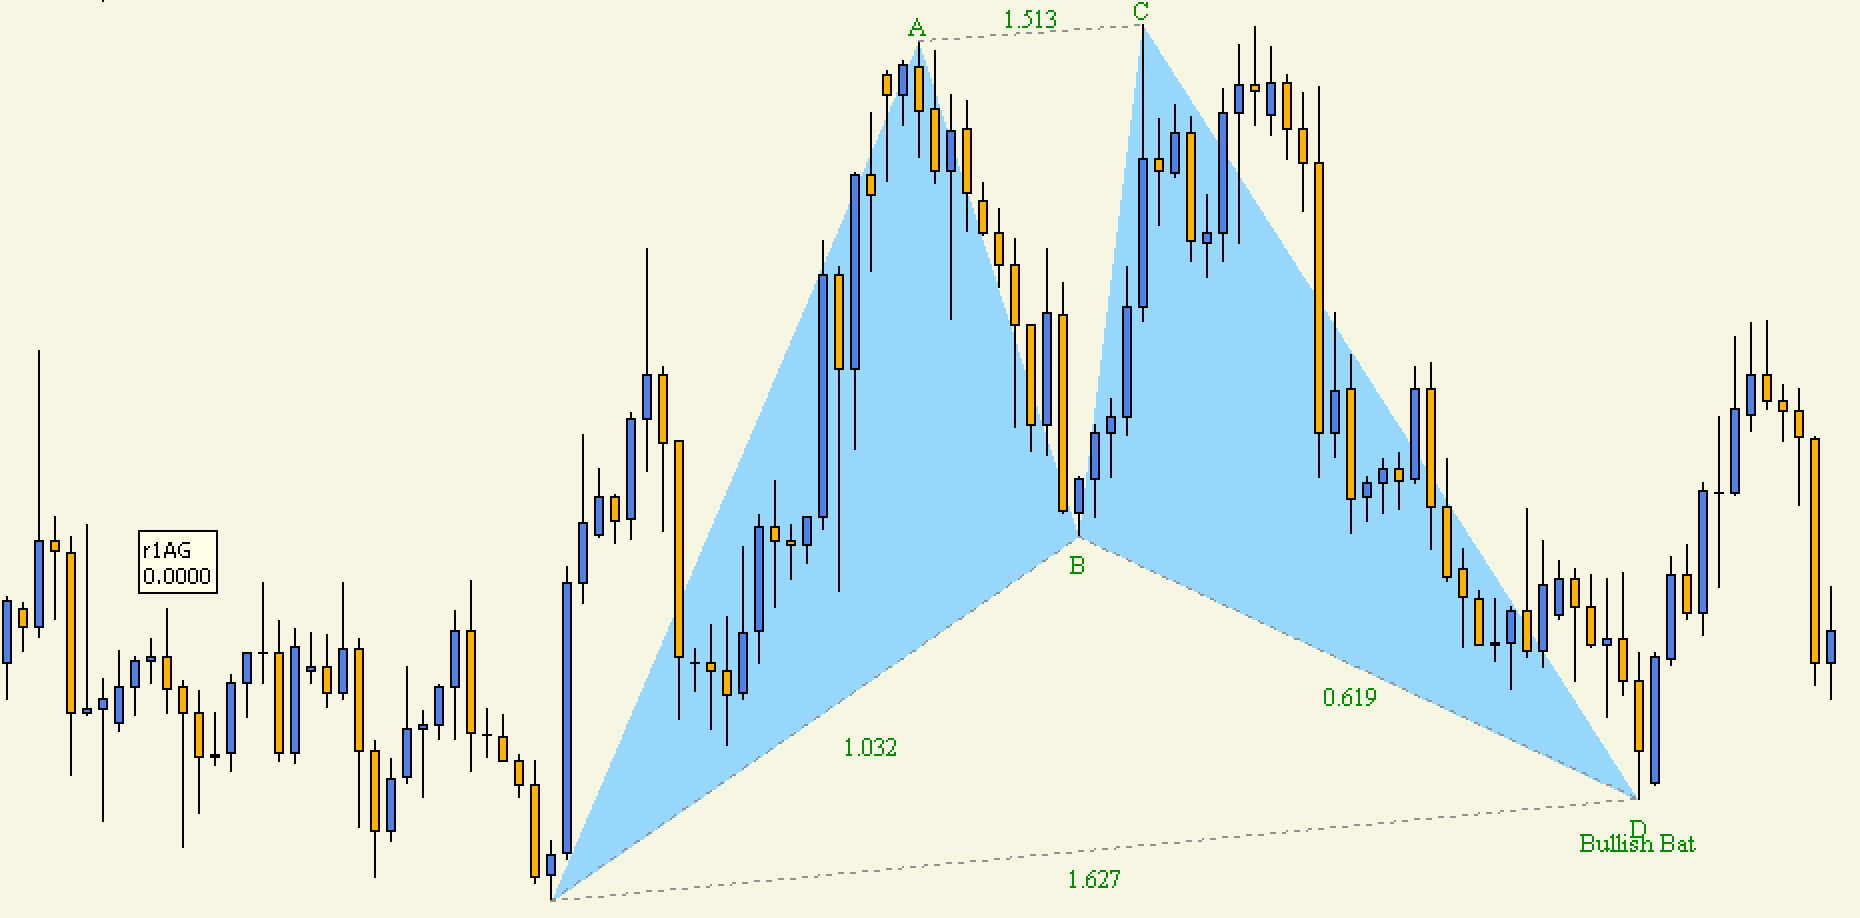 Trading the Harmonic Pattern Effectively